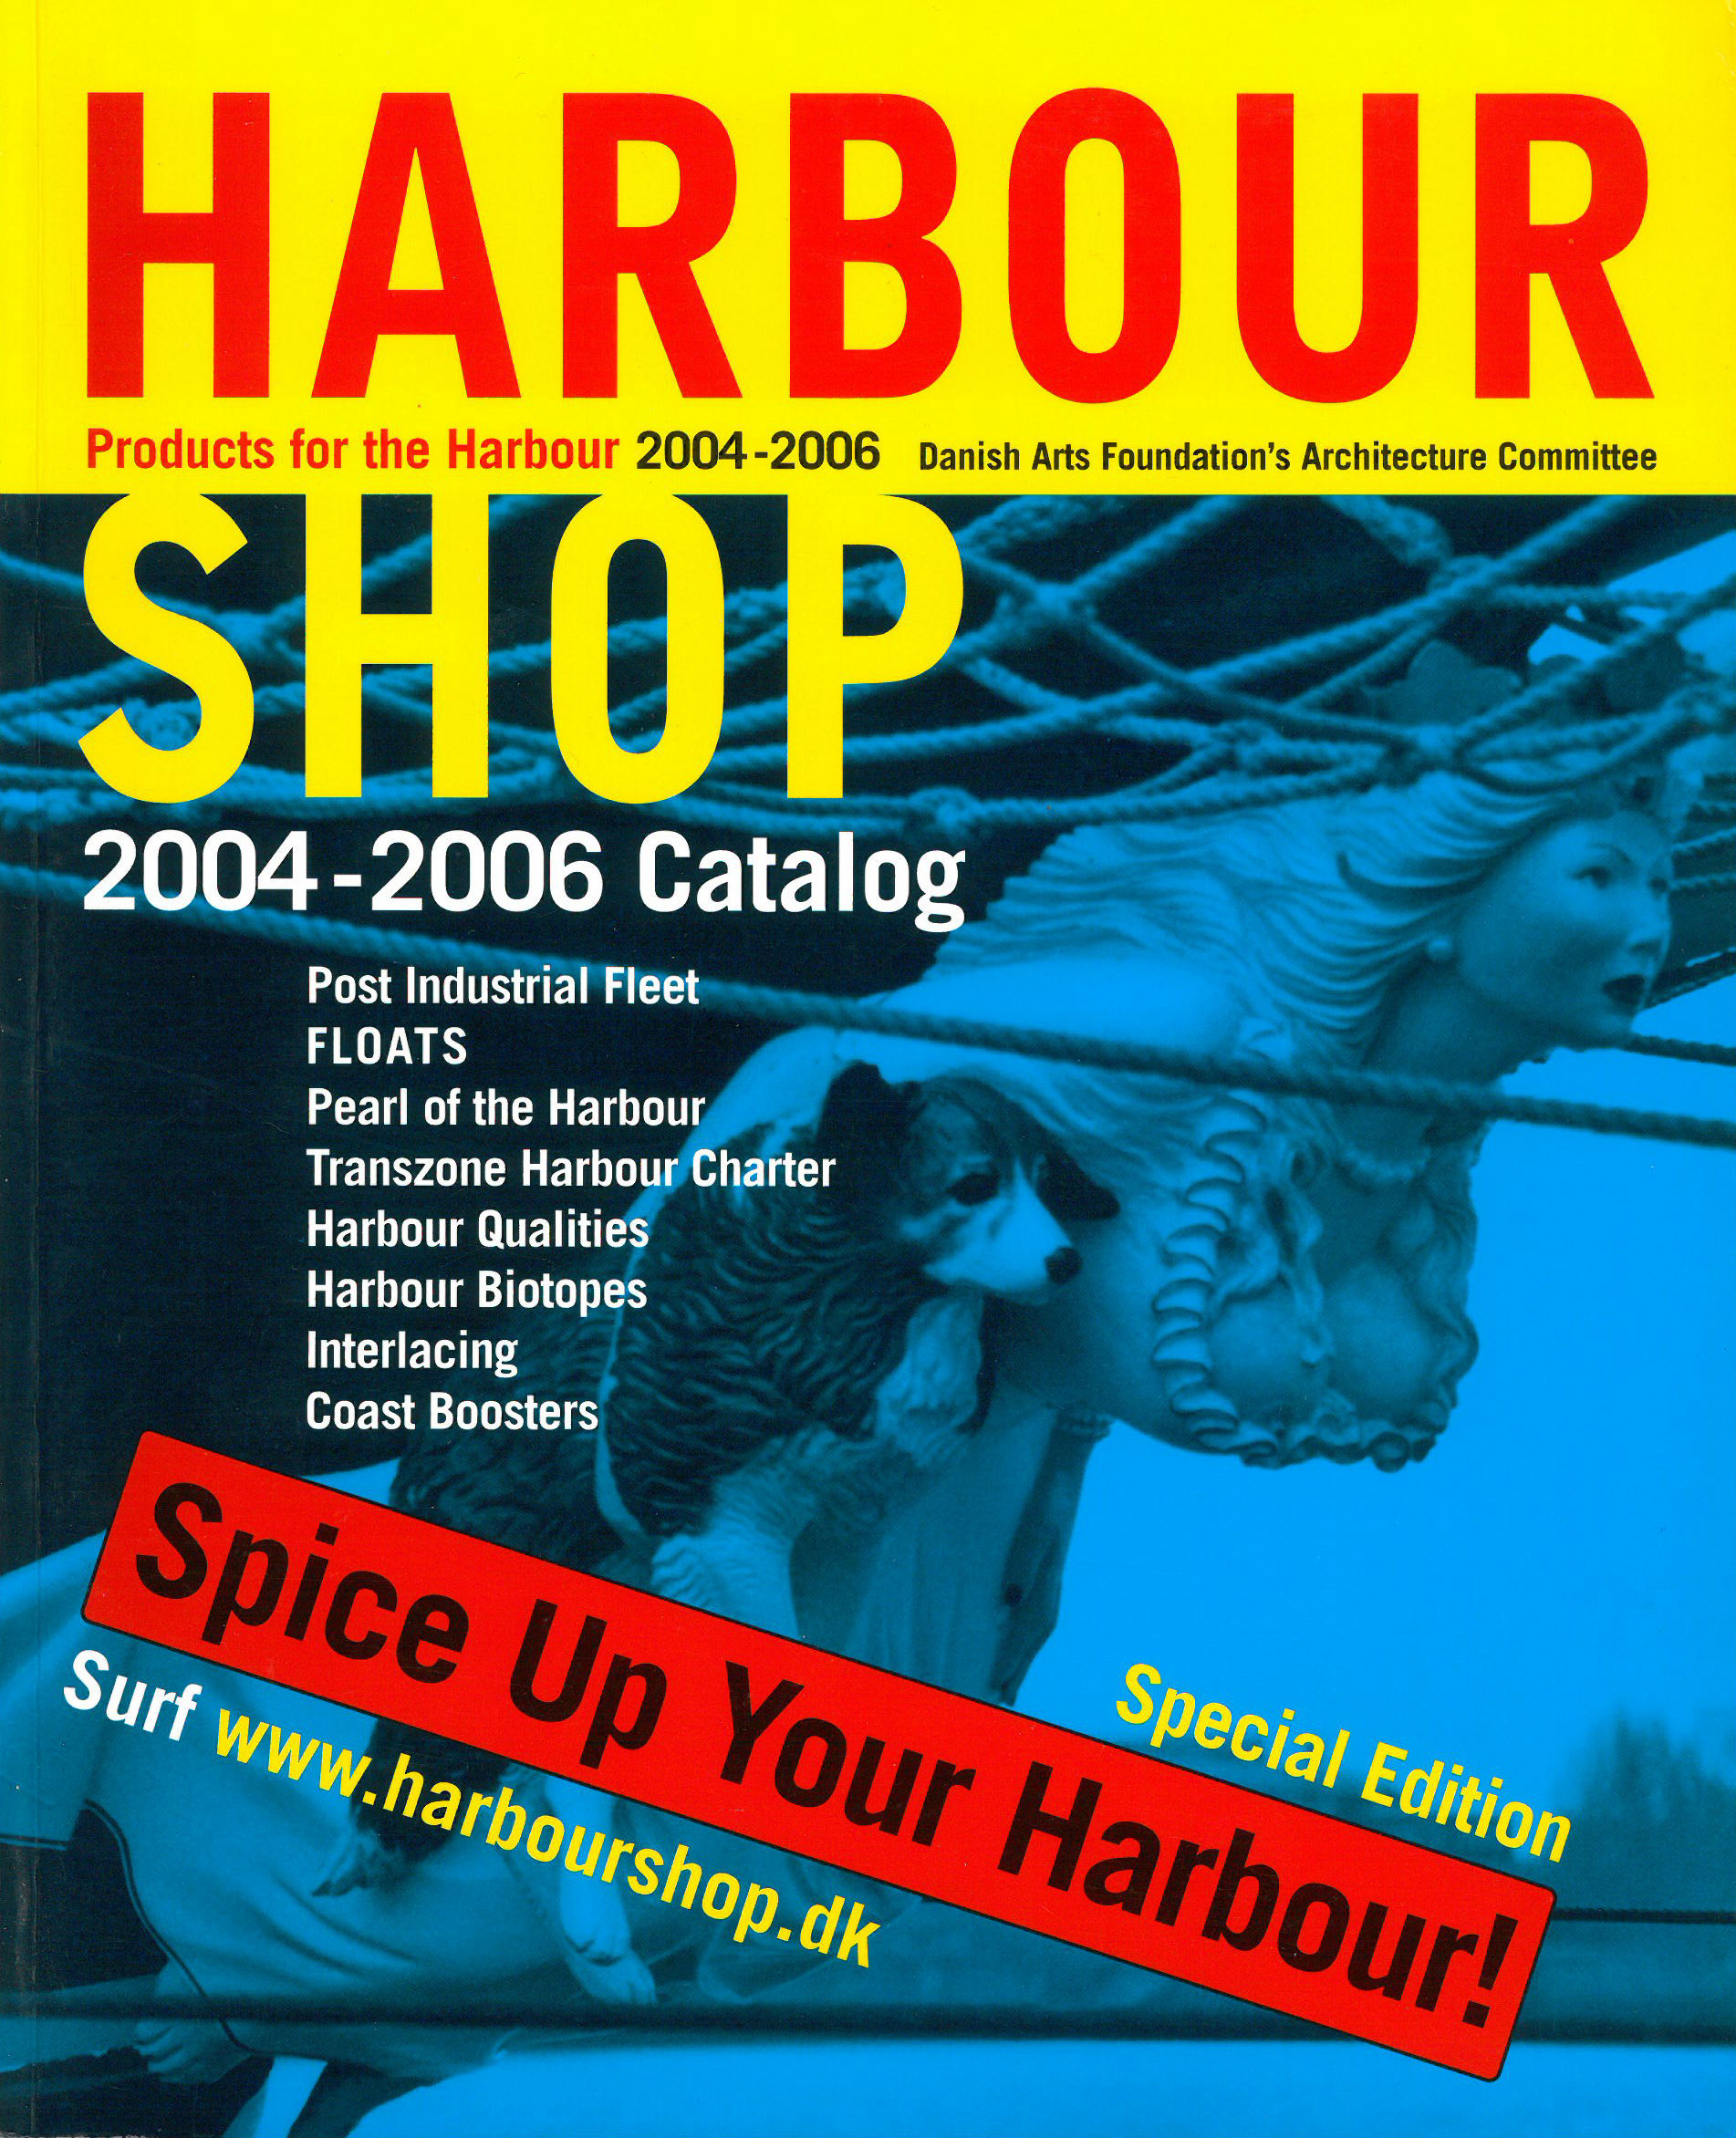 harbour_cover.jpg